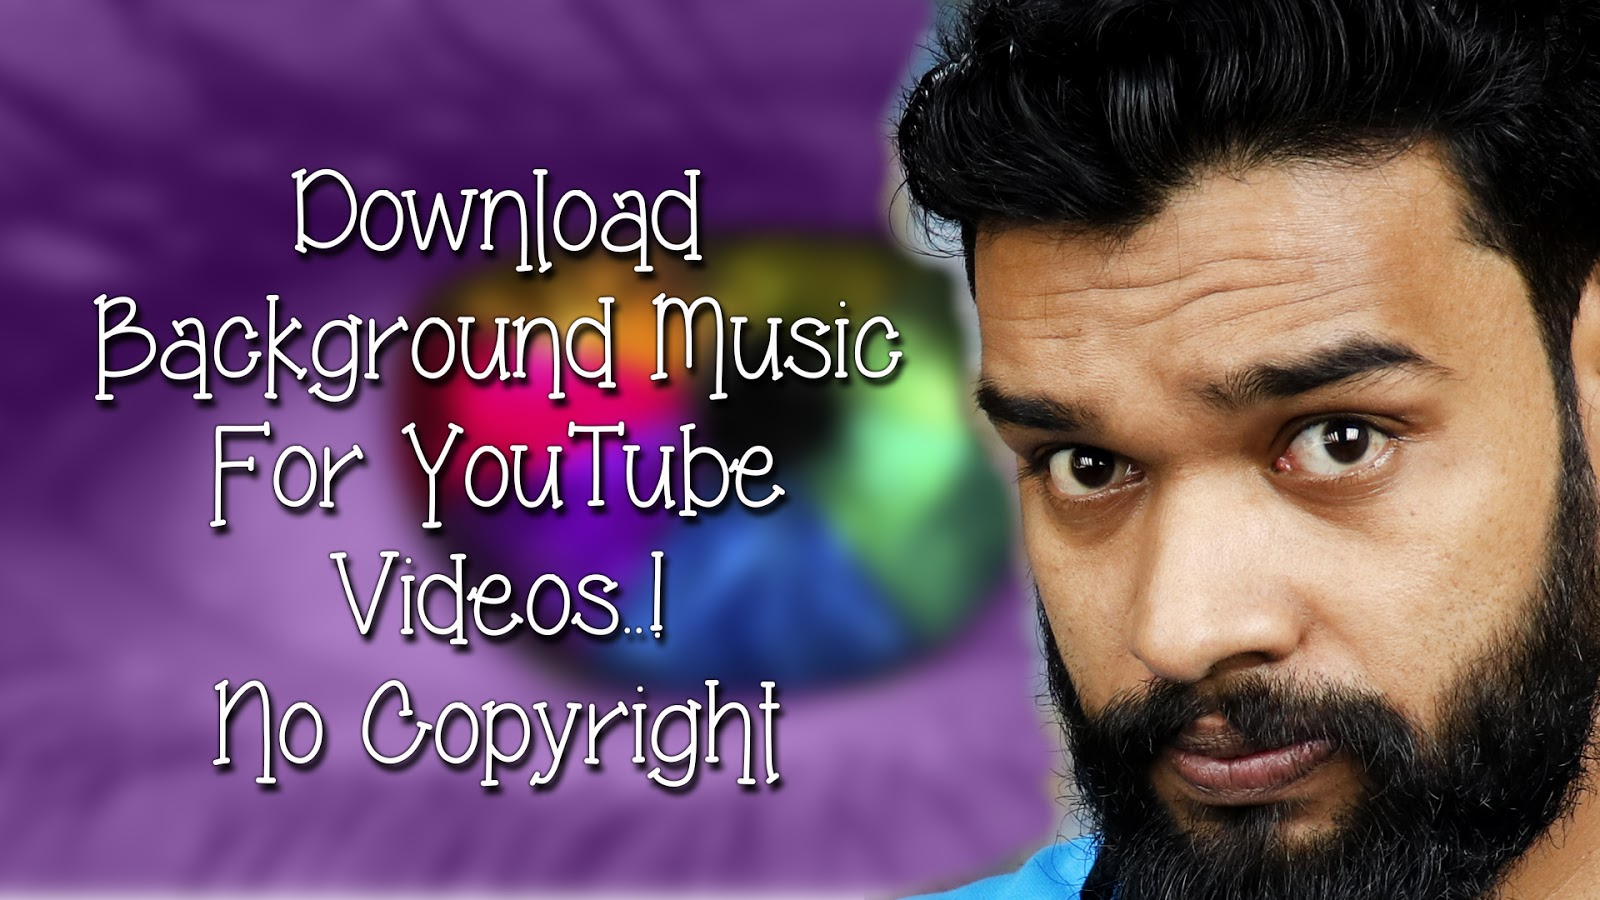 Download Background Music For YouTube Videos  ! No Copyright